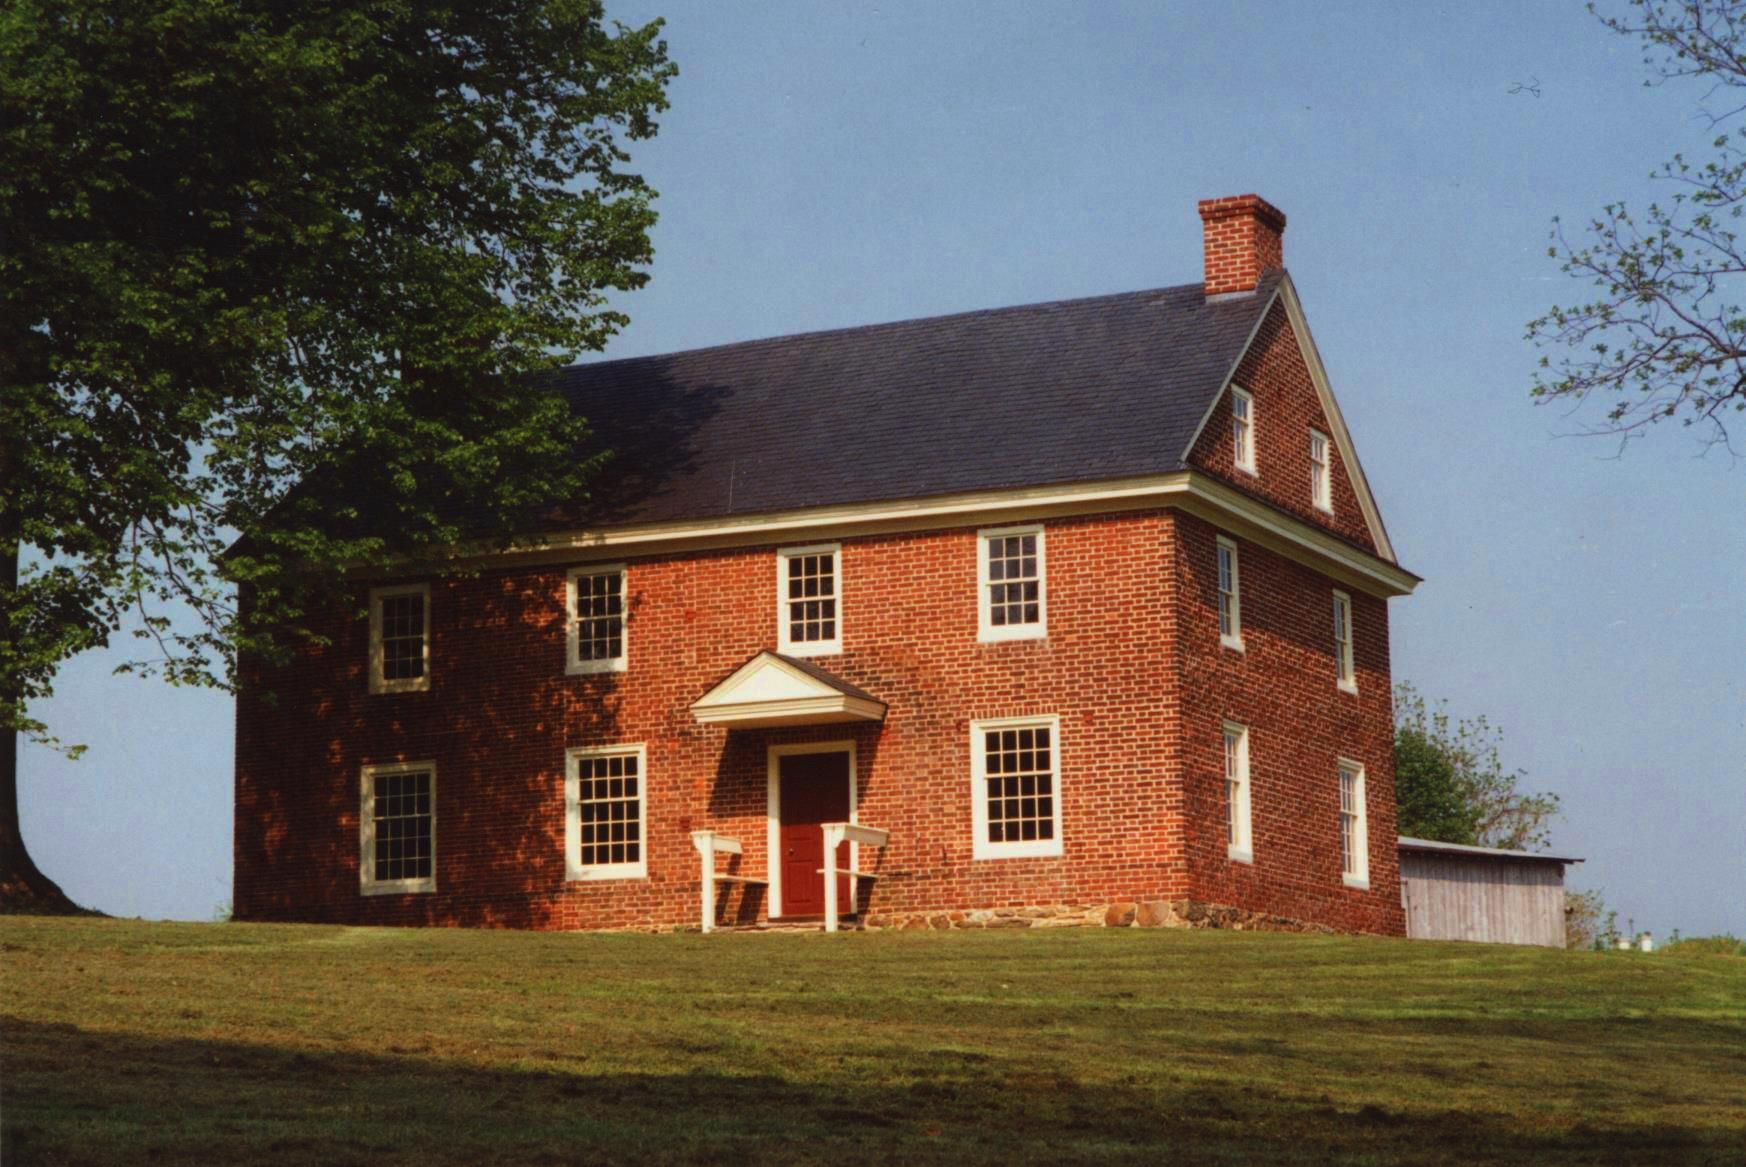 A fully restored brick home after historic preservation efforts.